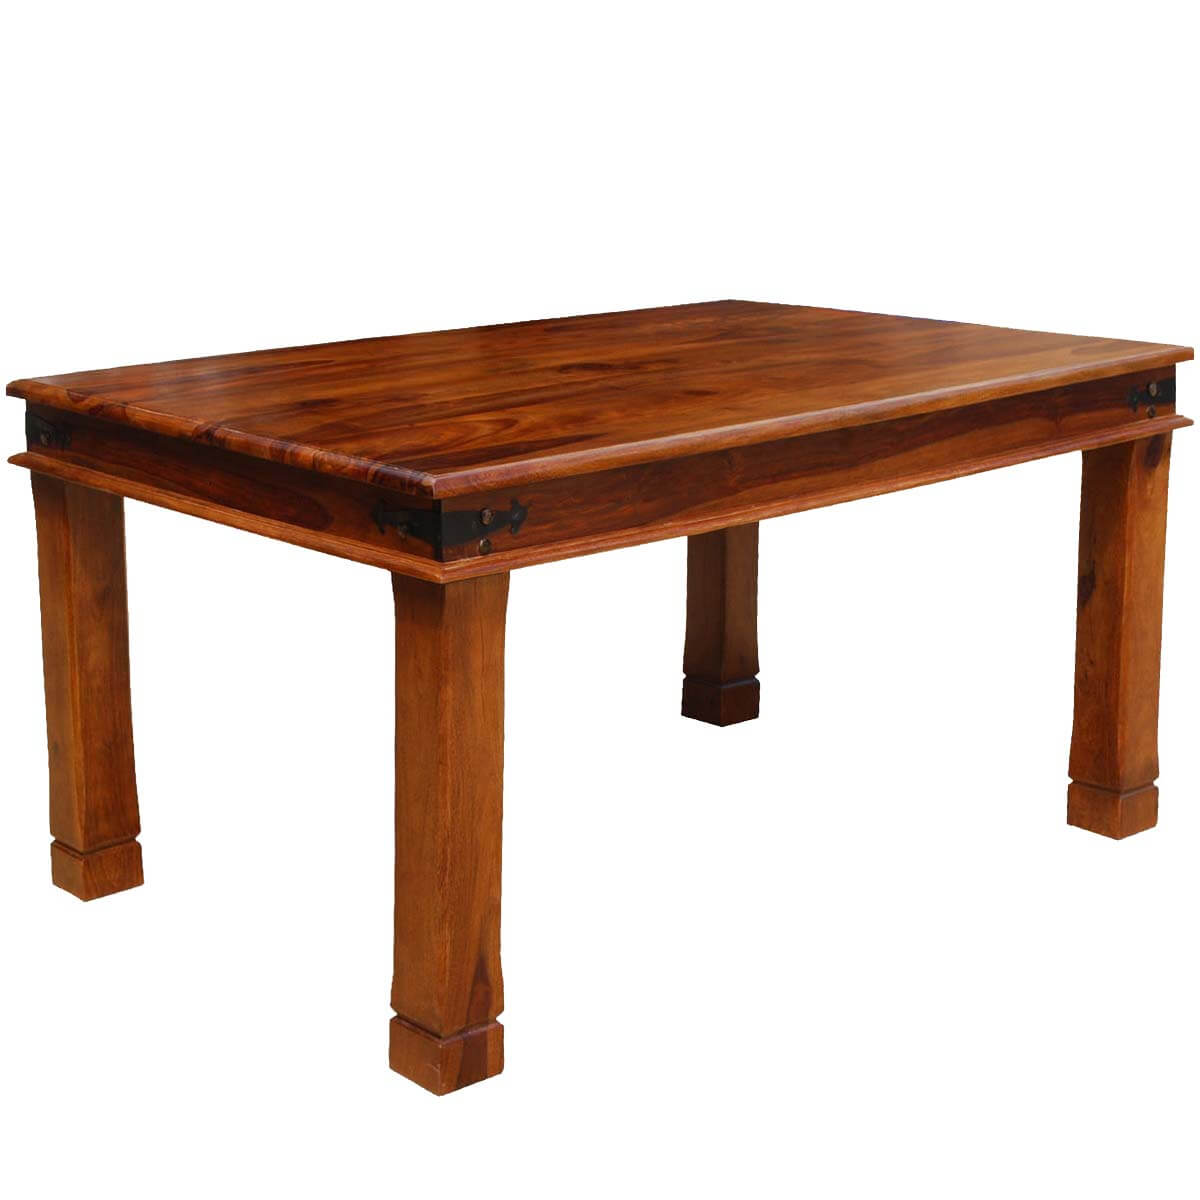 Fannin transitional solid wood double edge dining table for Solid wood dining table